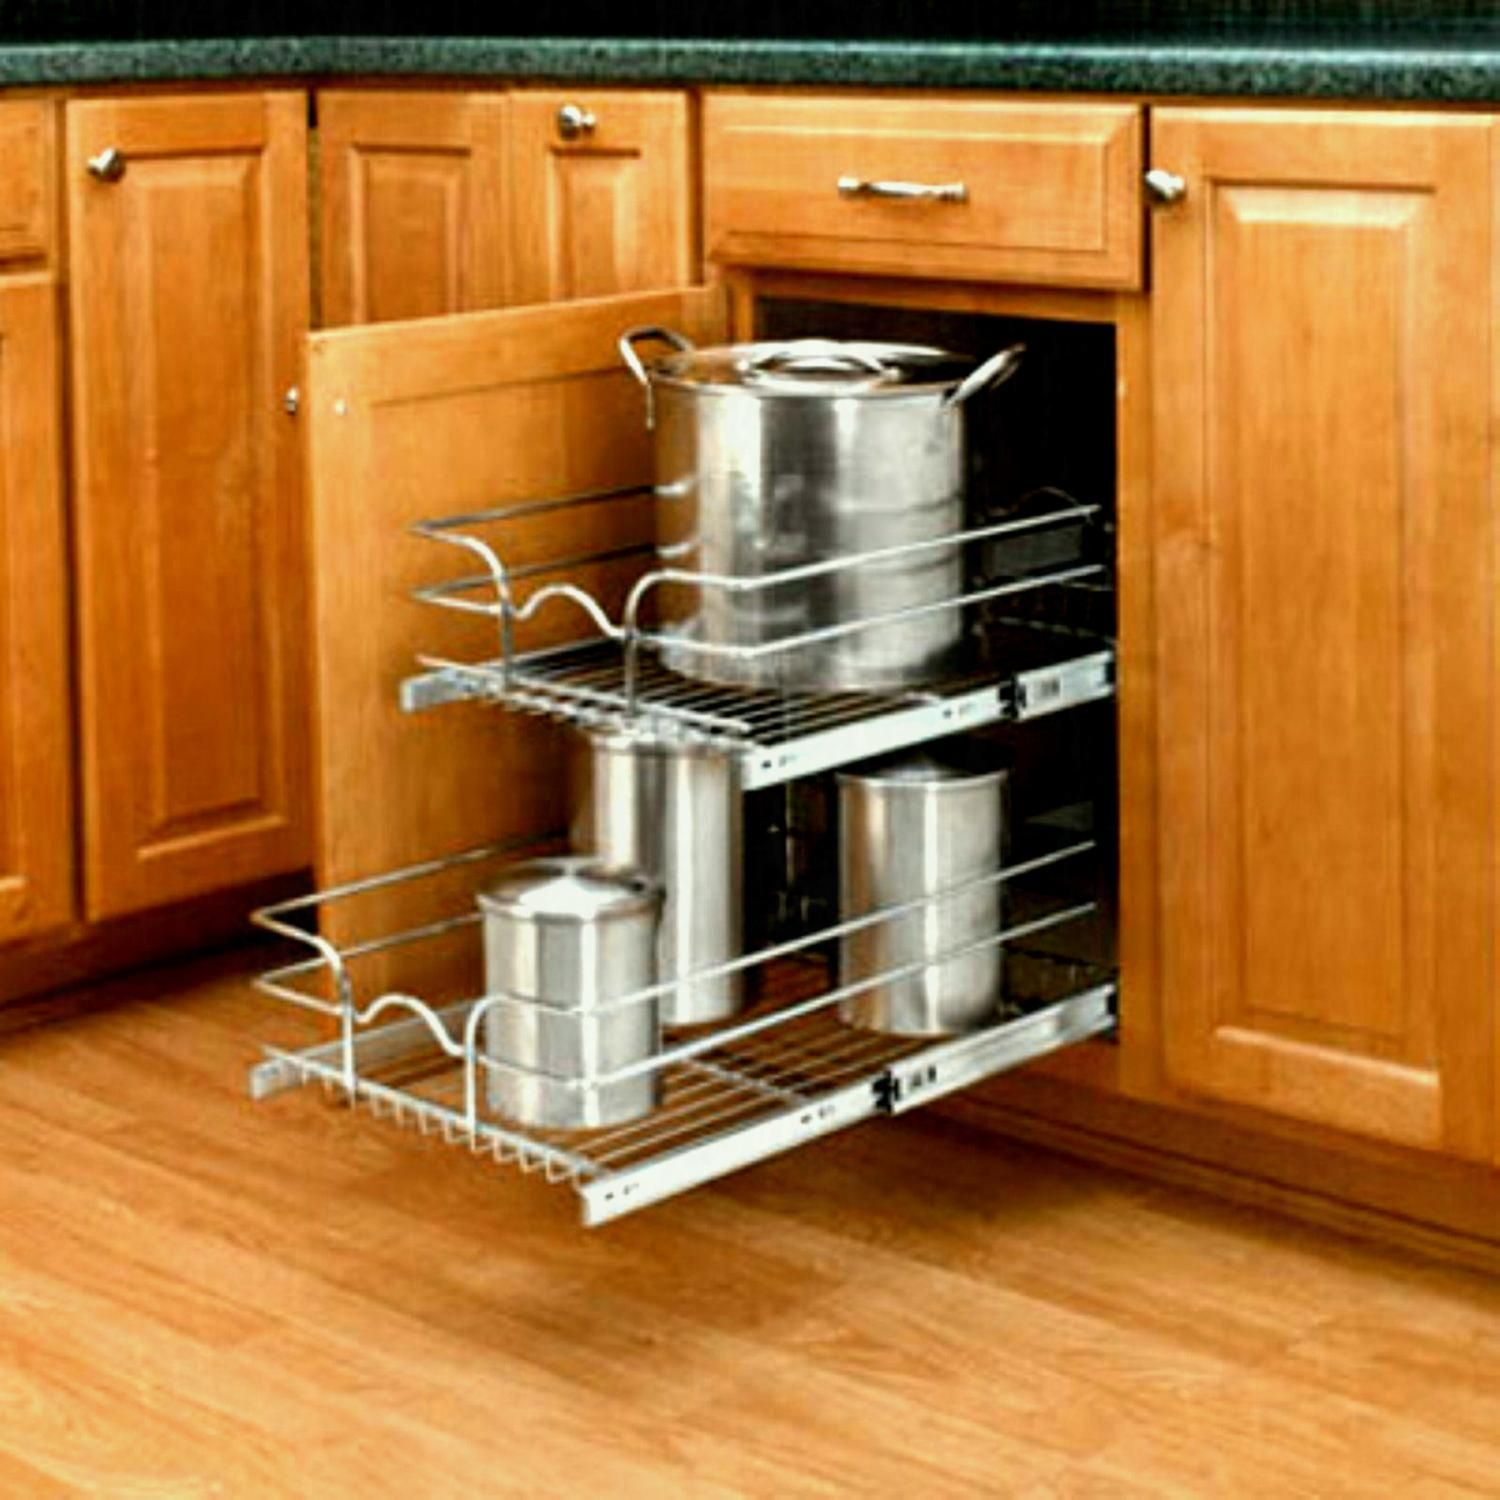 Diy Pull Out Shelves Cabinets Beds Sofas And With Images Kitchen Cabinet Pulls Cabinets Organization Rev A Shelf